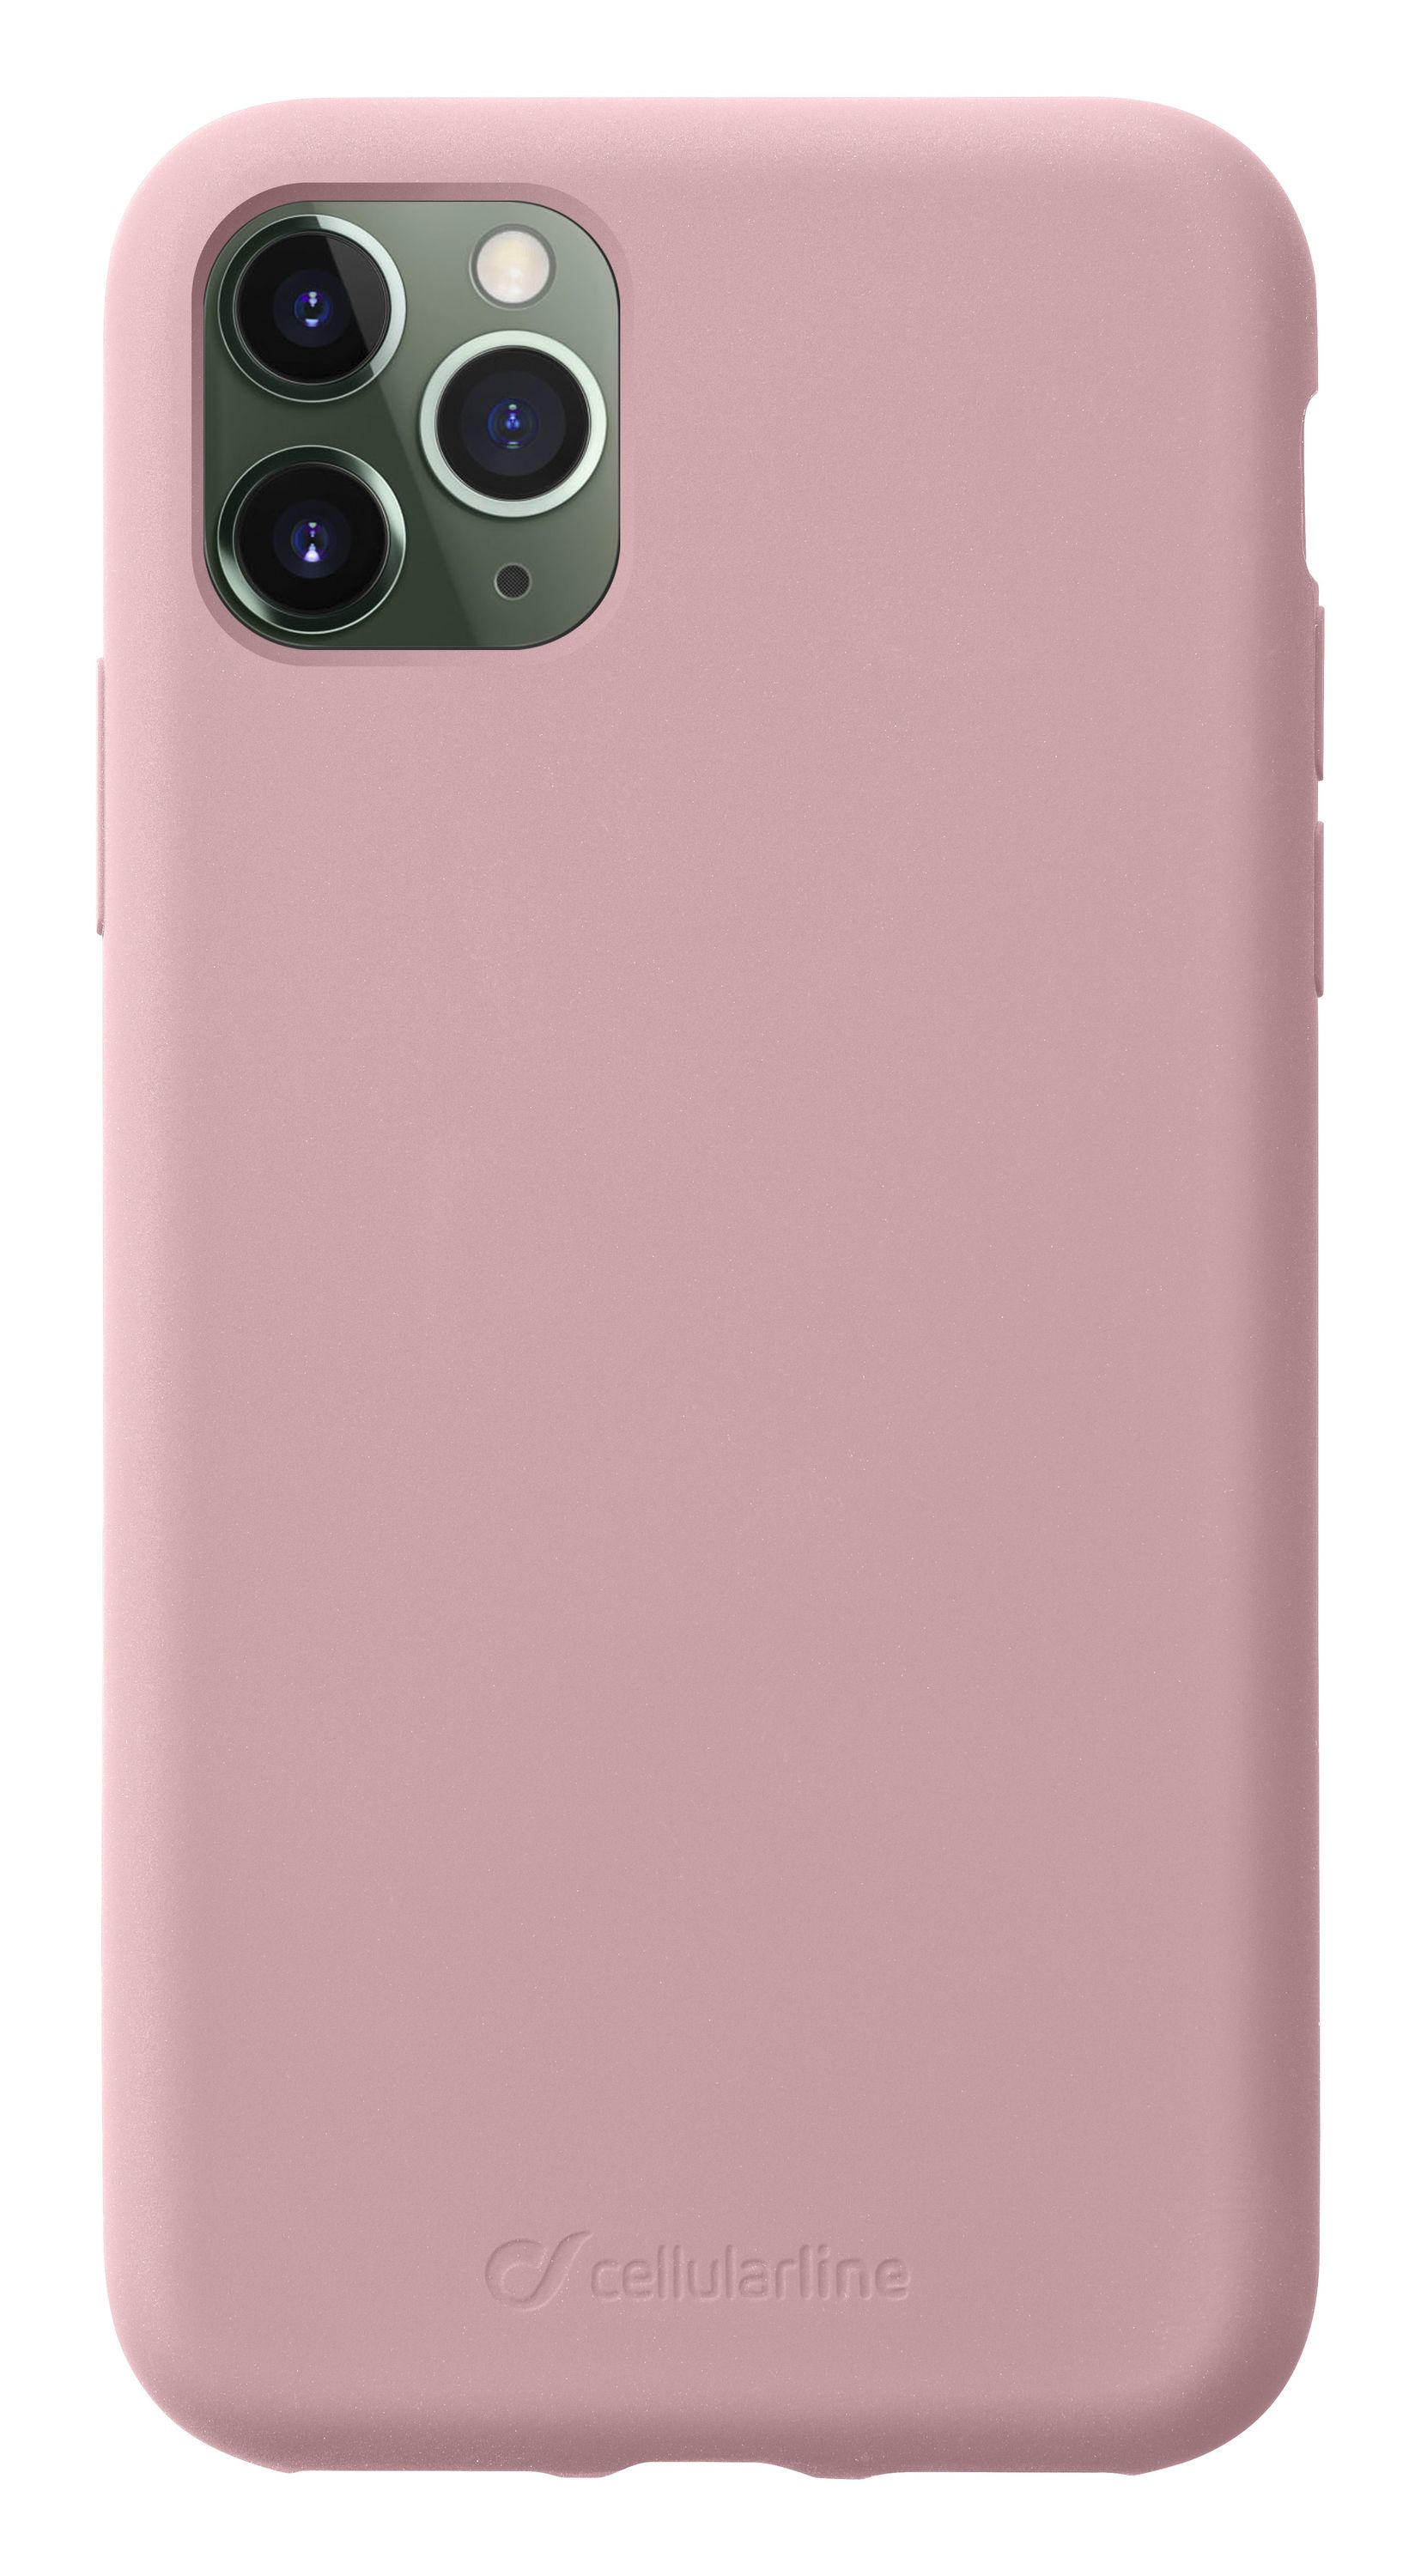 Cellular Line Custodia in silicone soft touch iPhone 11 Pro Max - Sensationiphximaxp